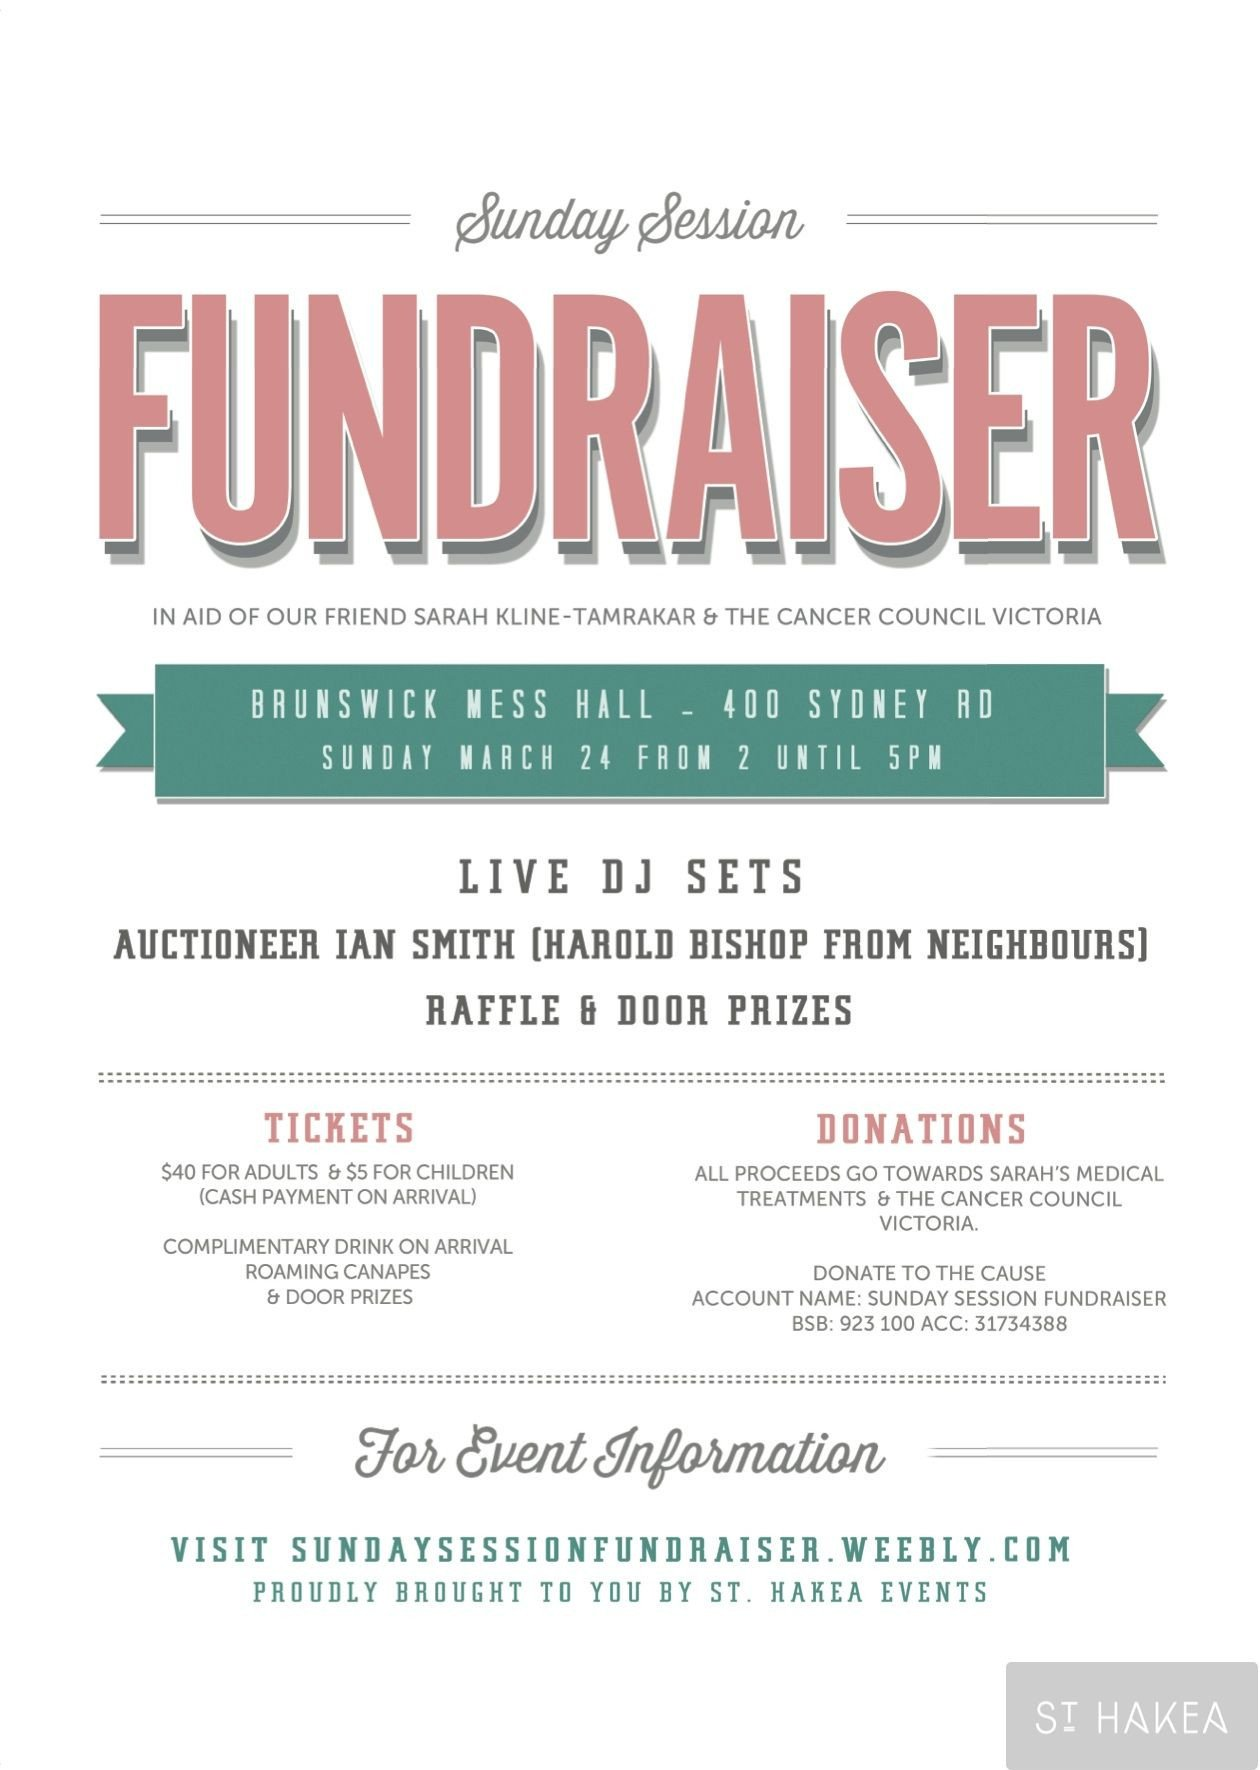 Ad Book Fundraiser Template Sunday Session Fundraiser event Flyer Proudly Bought to